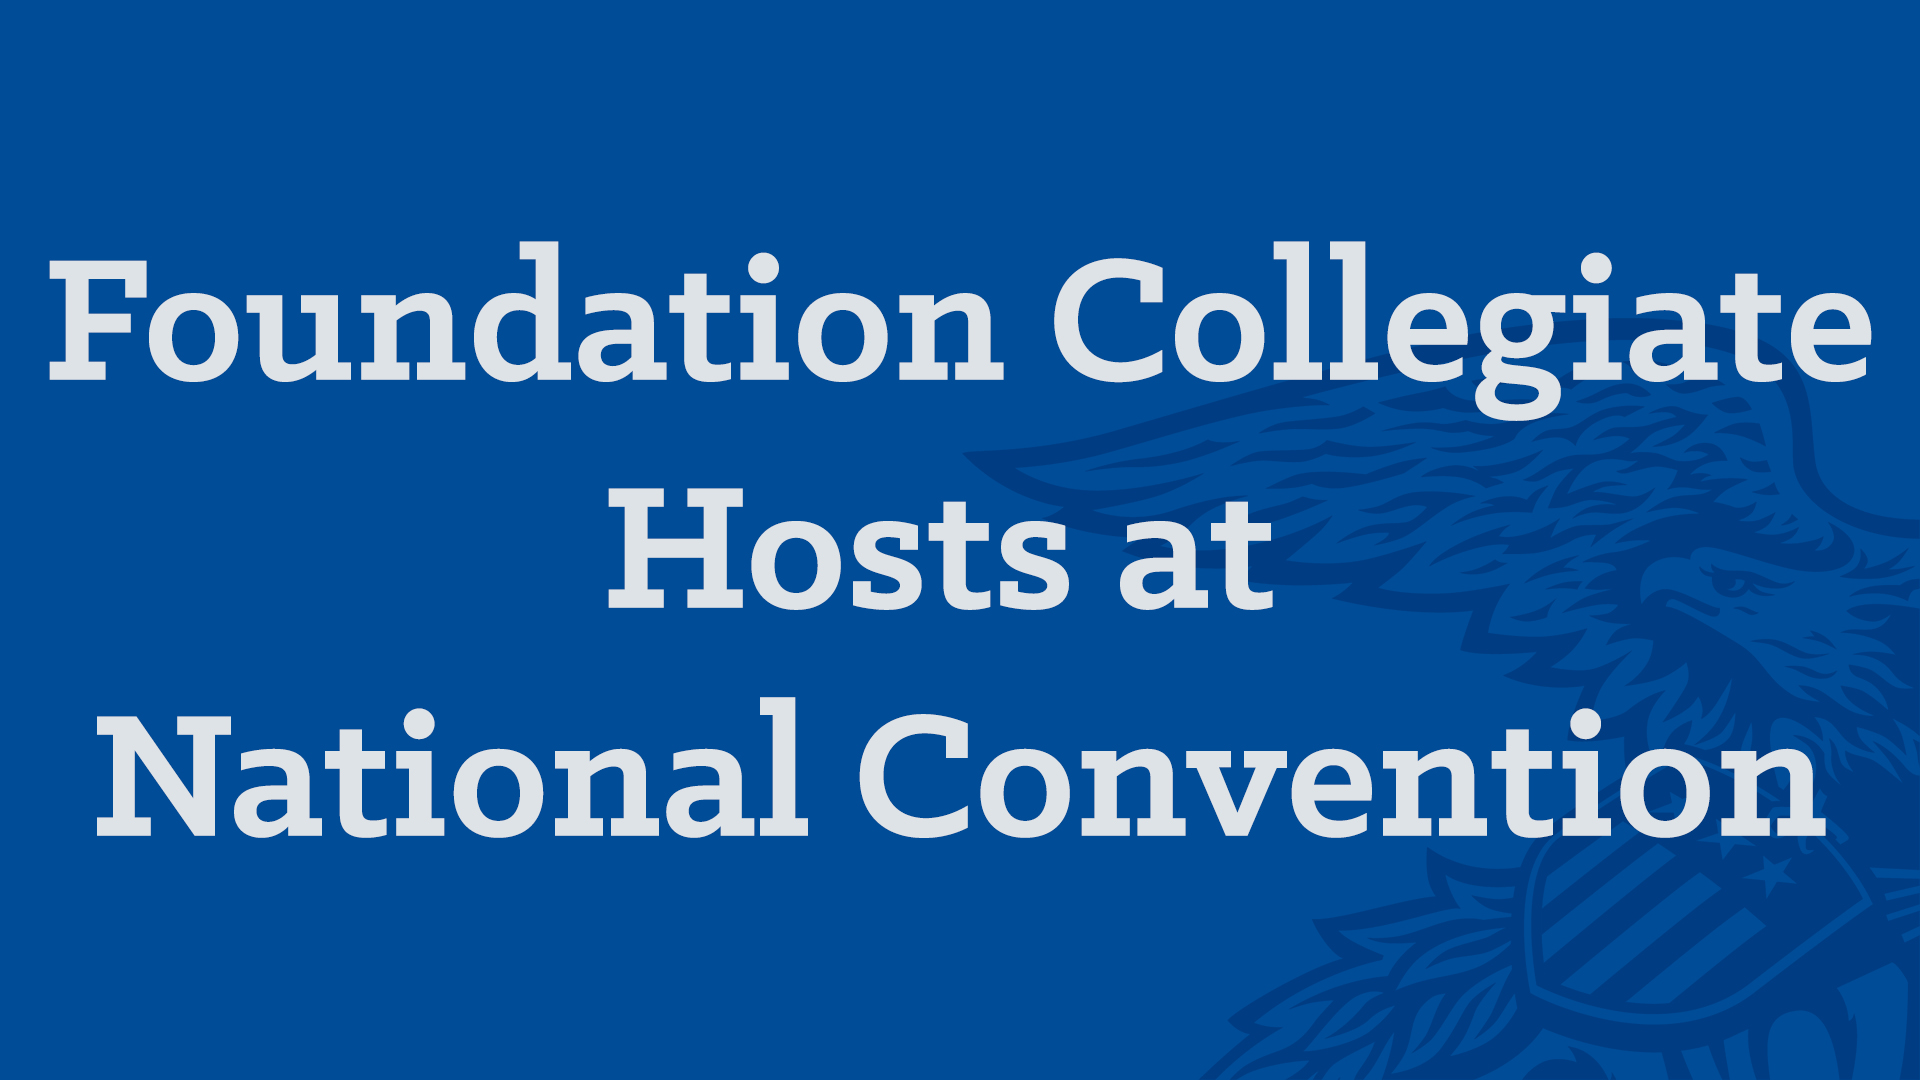 Foundation Collegiate Hosts at Convention